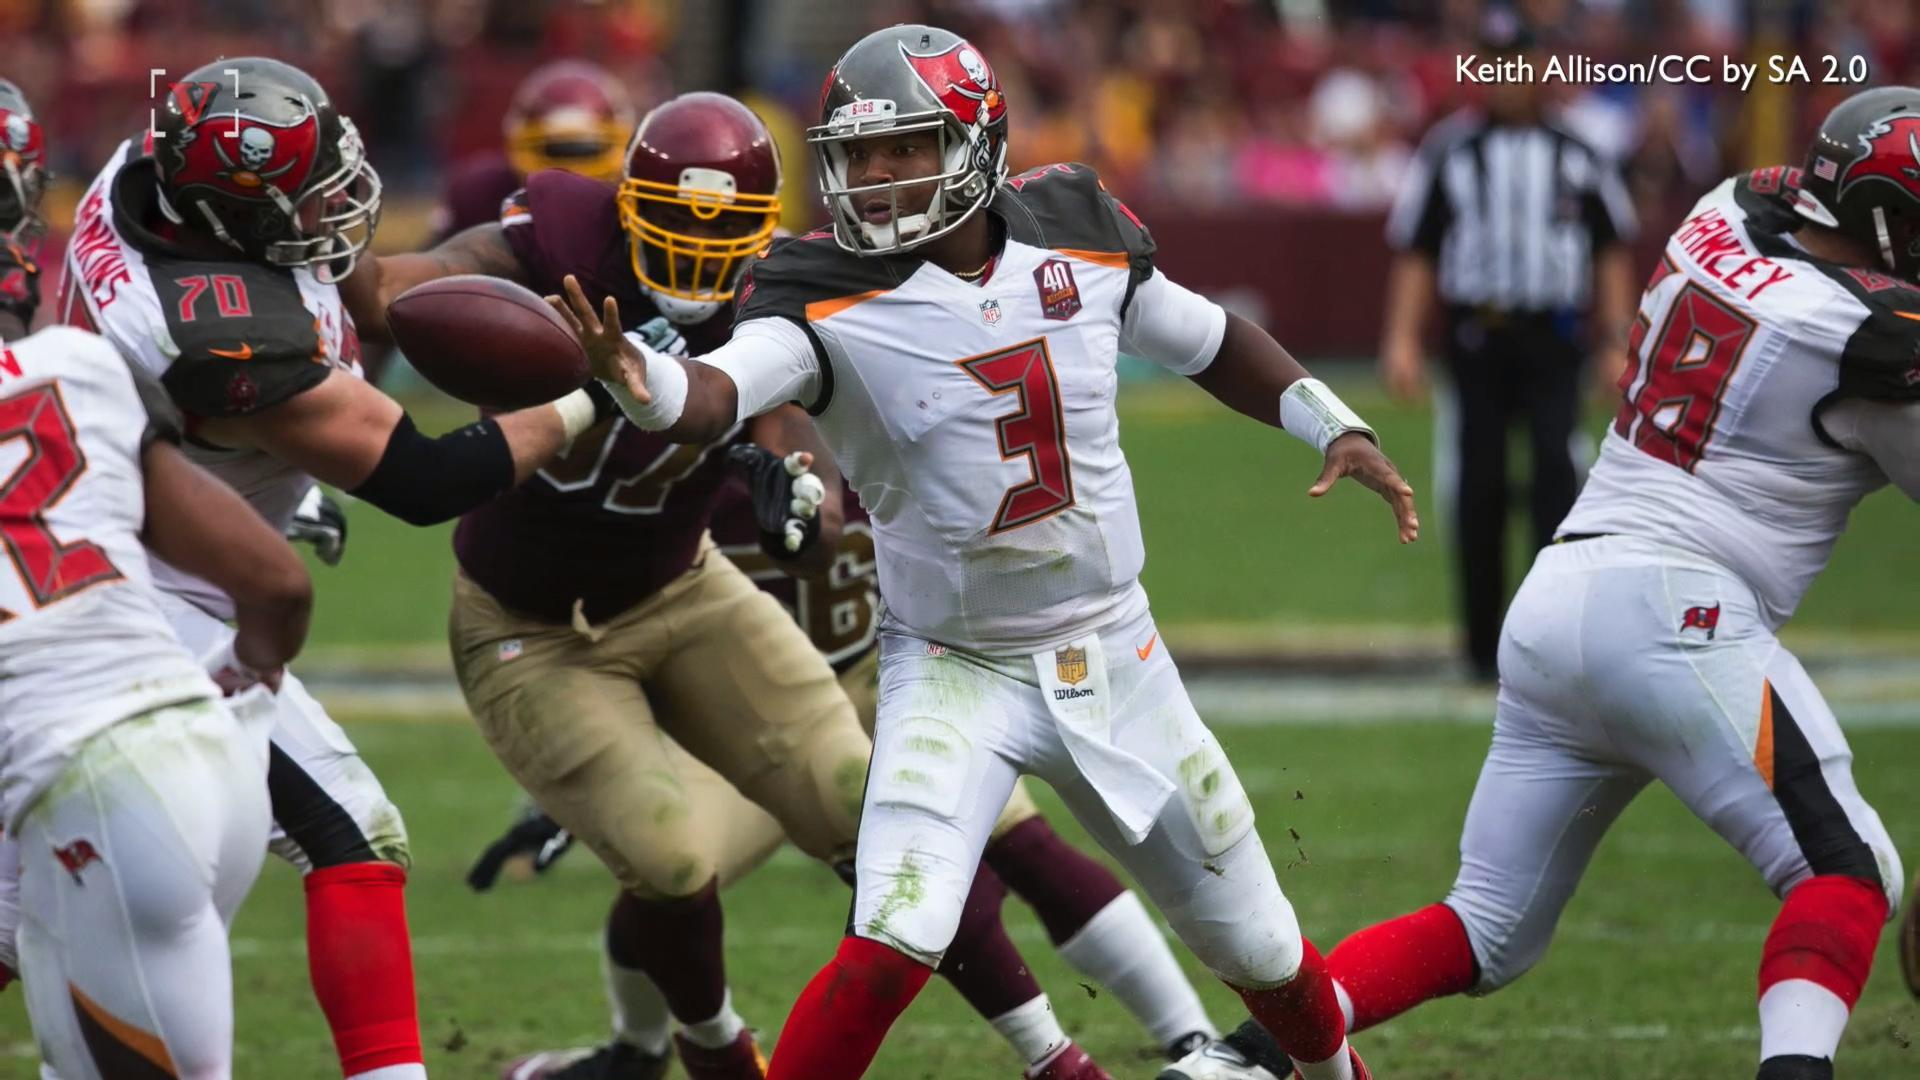 Buccaneers QB Winston Apologizes for 'Poor Word Choice'